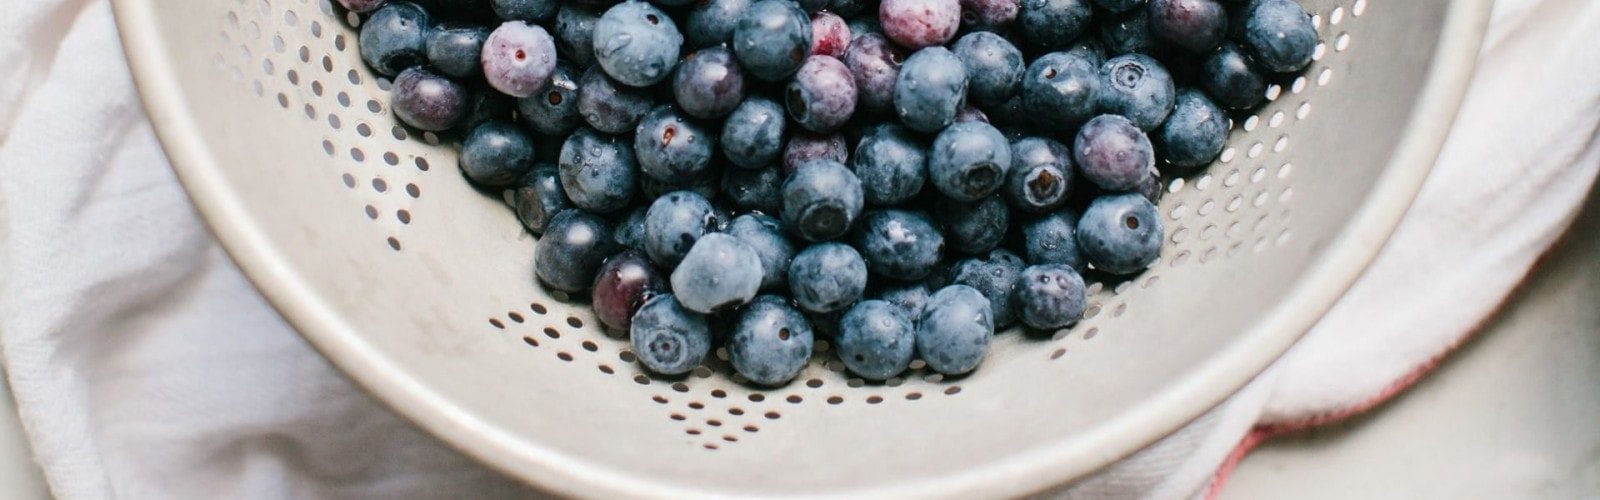 Blueberries in a while bowl about to be washed for making blueberry pie